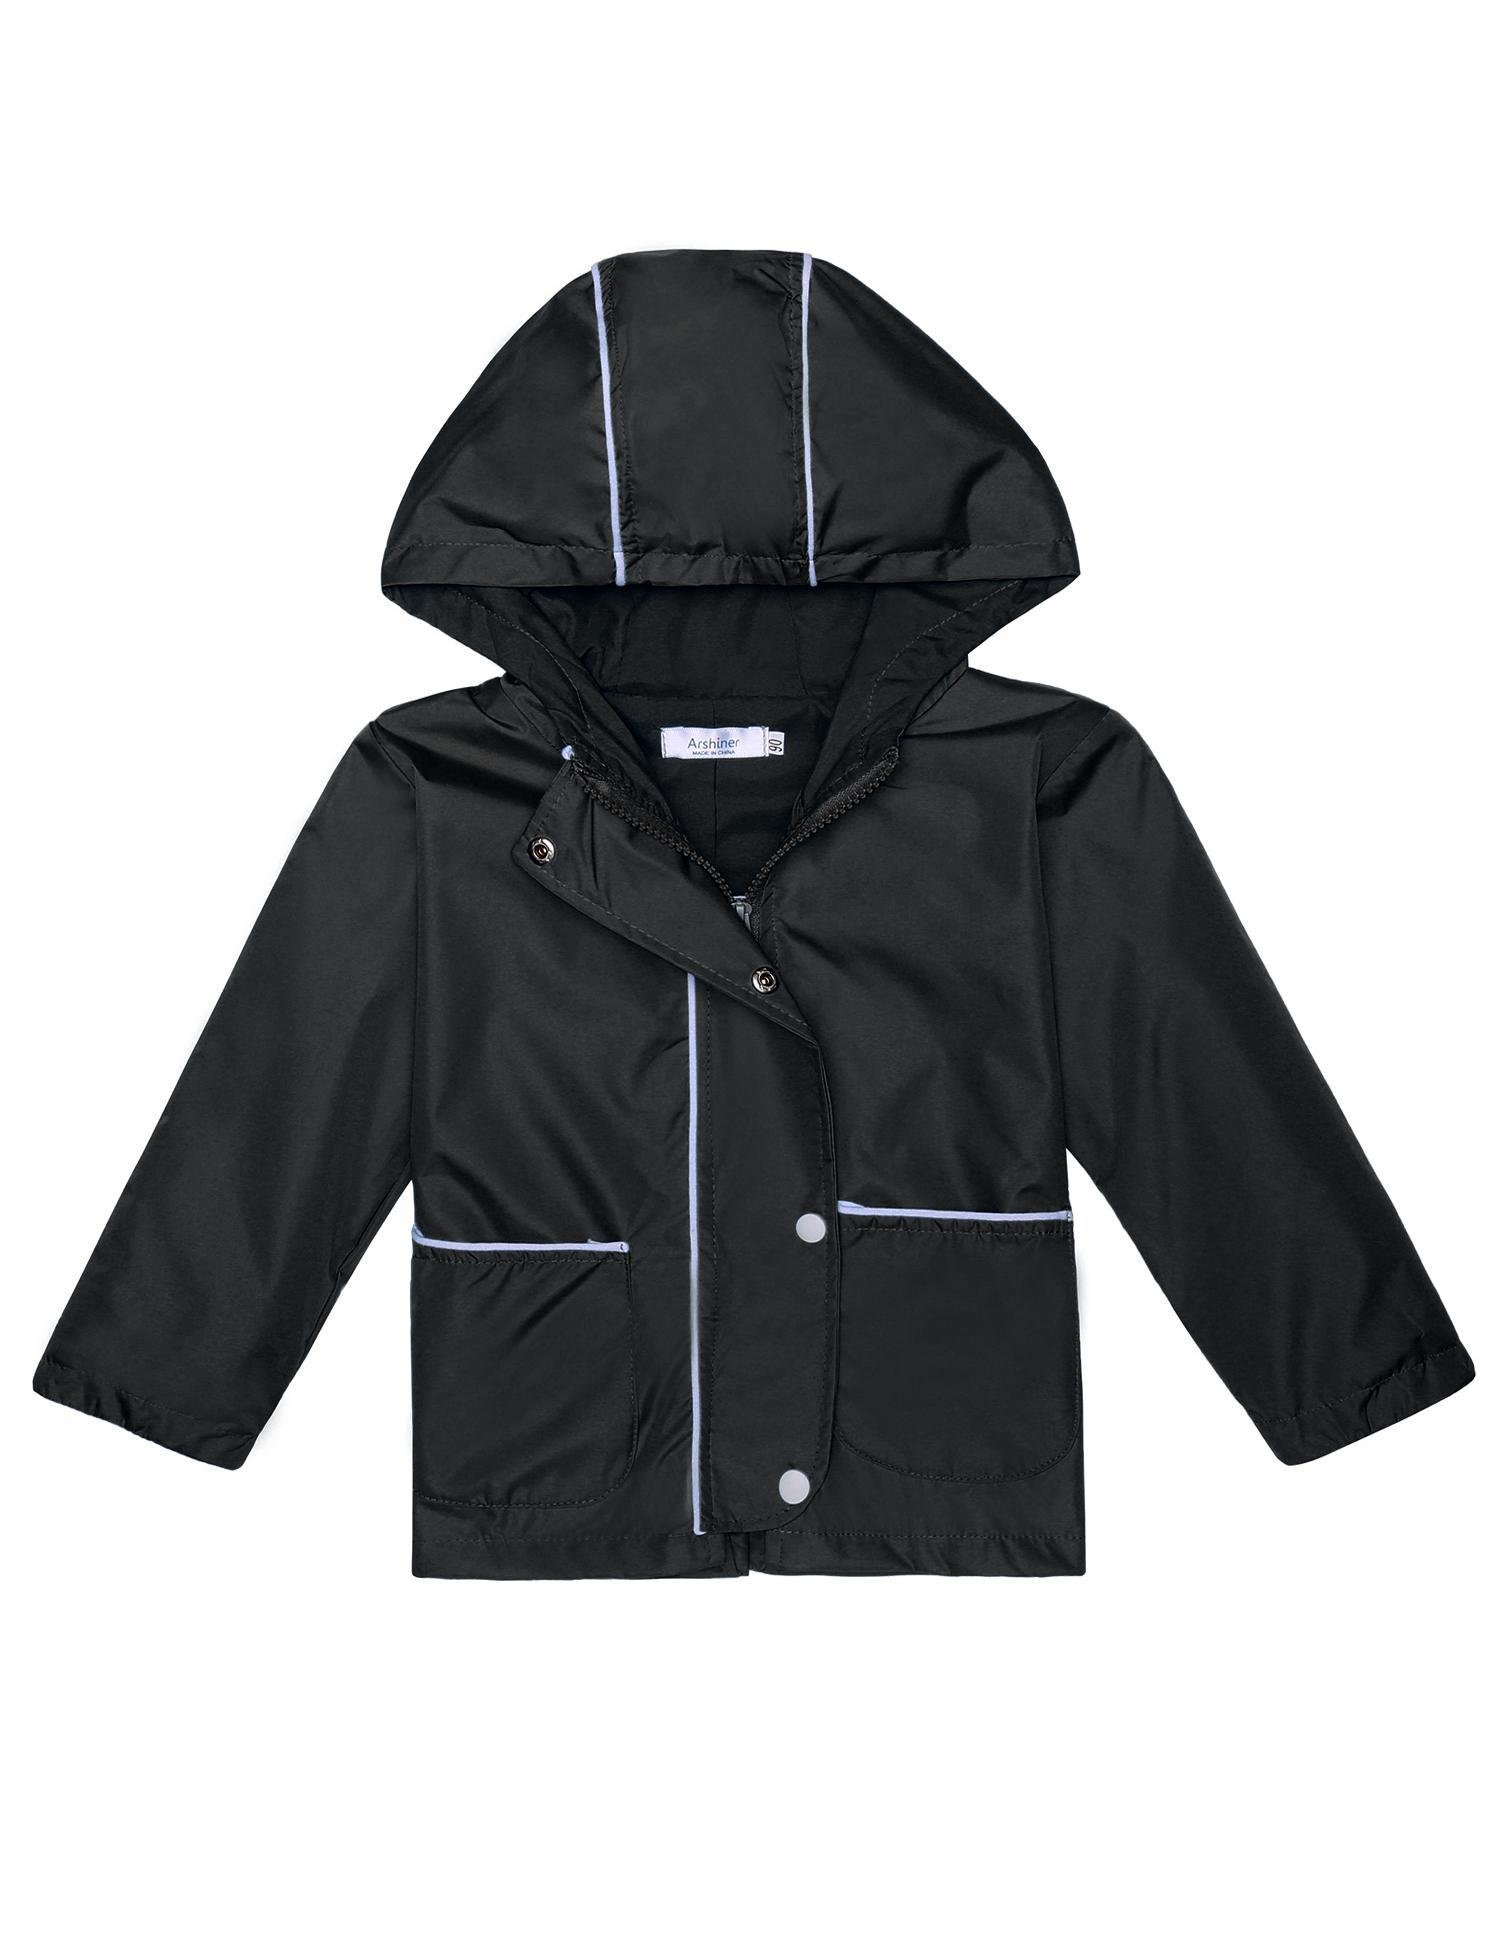 Cindere Kids Raincoat Lightweight Waterproof Rain Jacket Coat with Hooded (140(Age for 7-9Y), Type2 Black) by Cindere